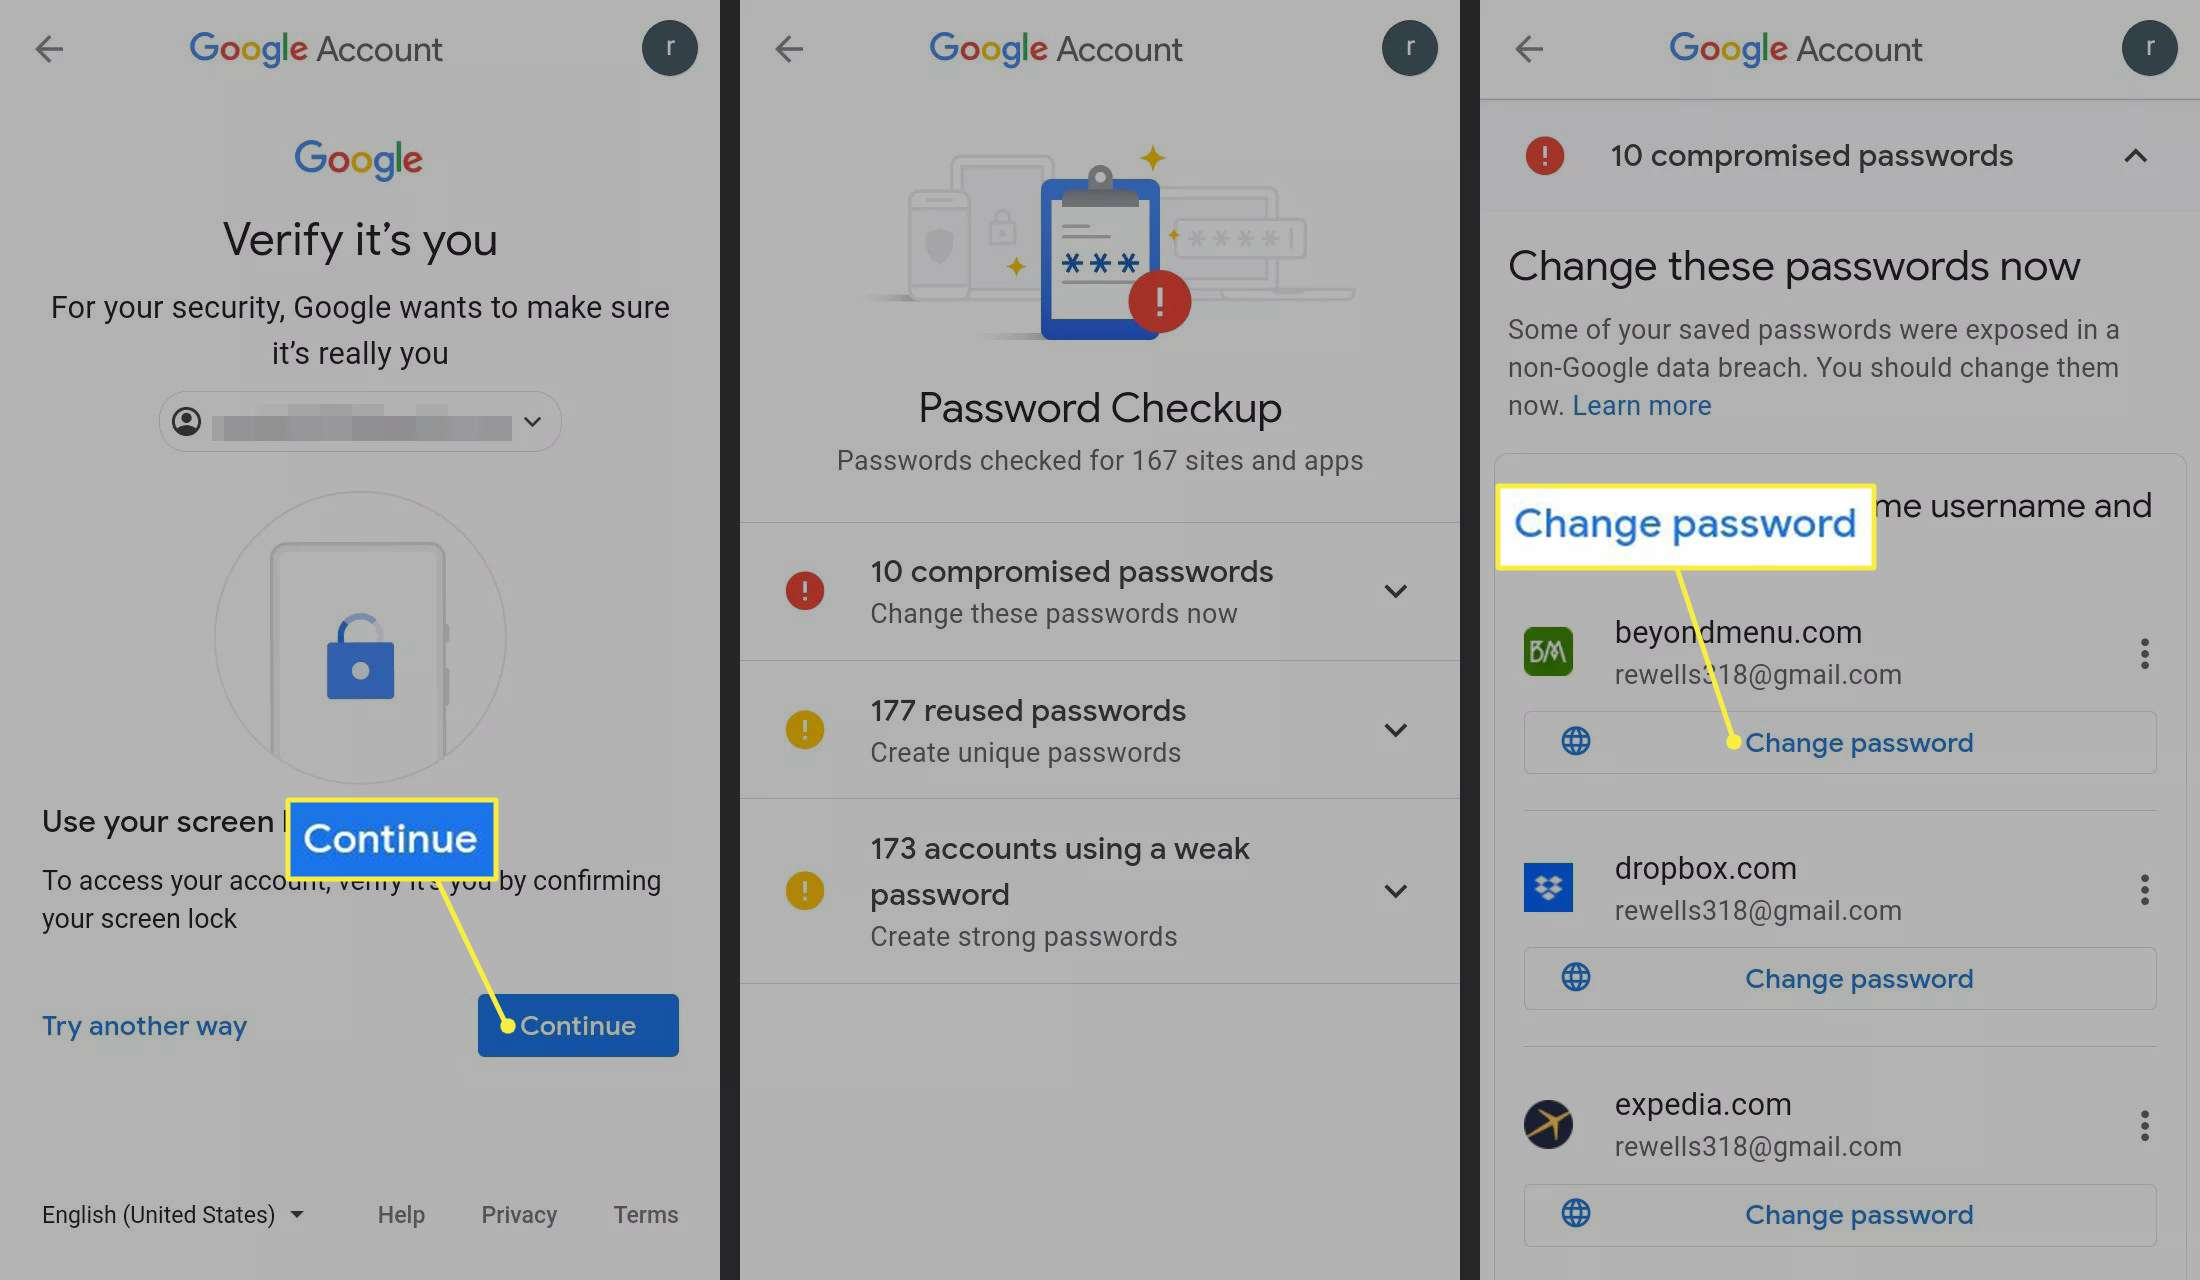 Continue and Change password highlighted in Android Settings